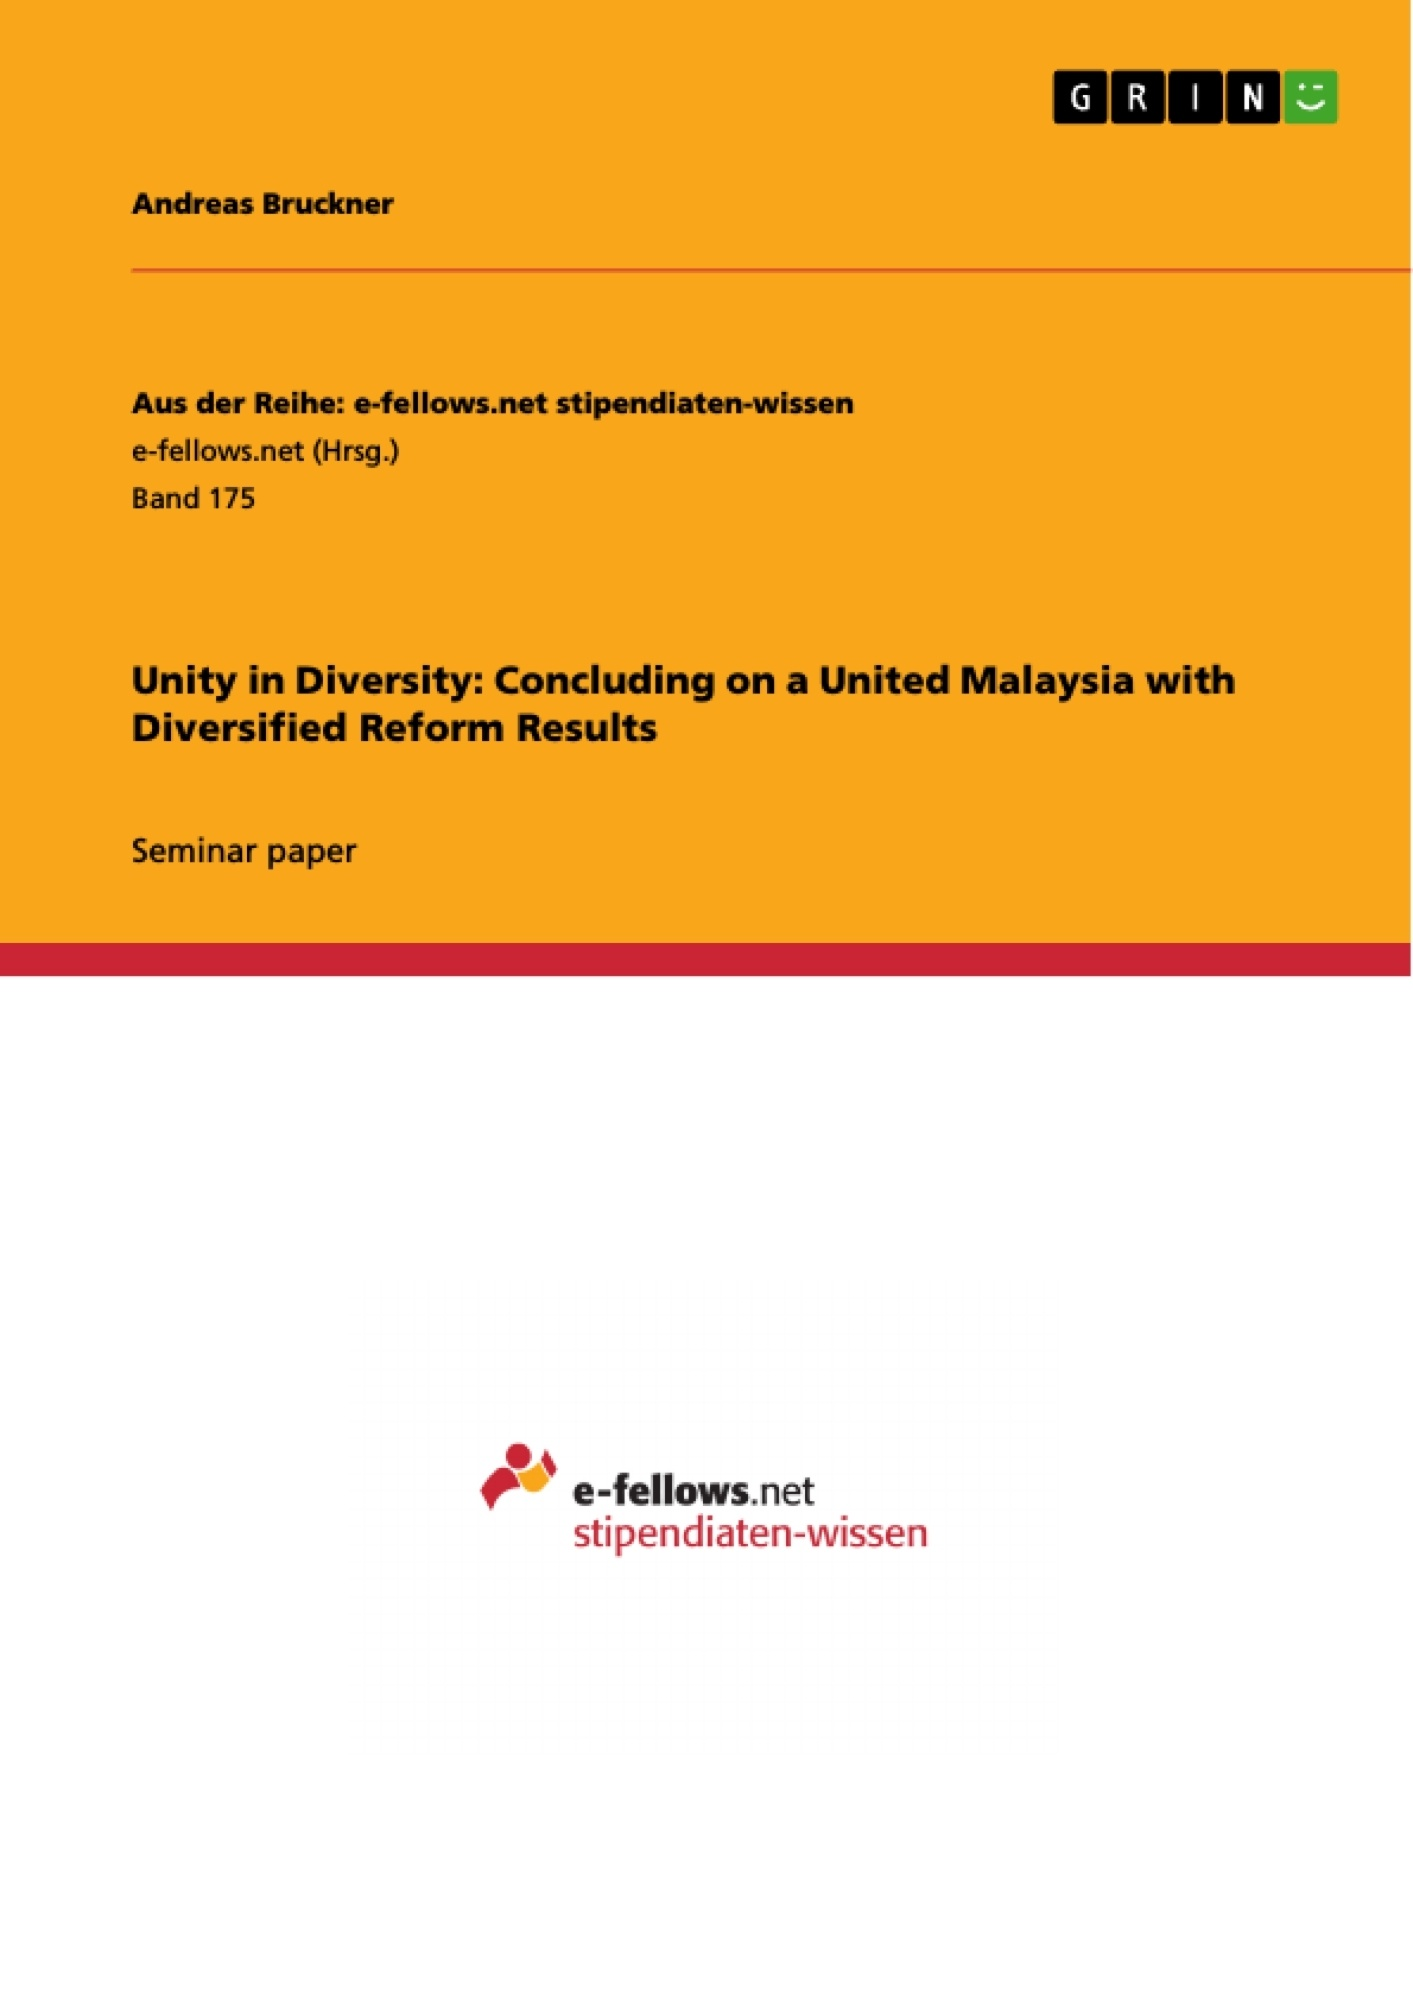 Title: Unity in Diversity: Concluding on a United Malaysia with Diversified Reform Results